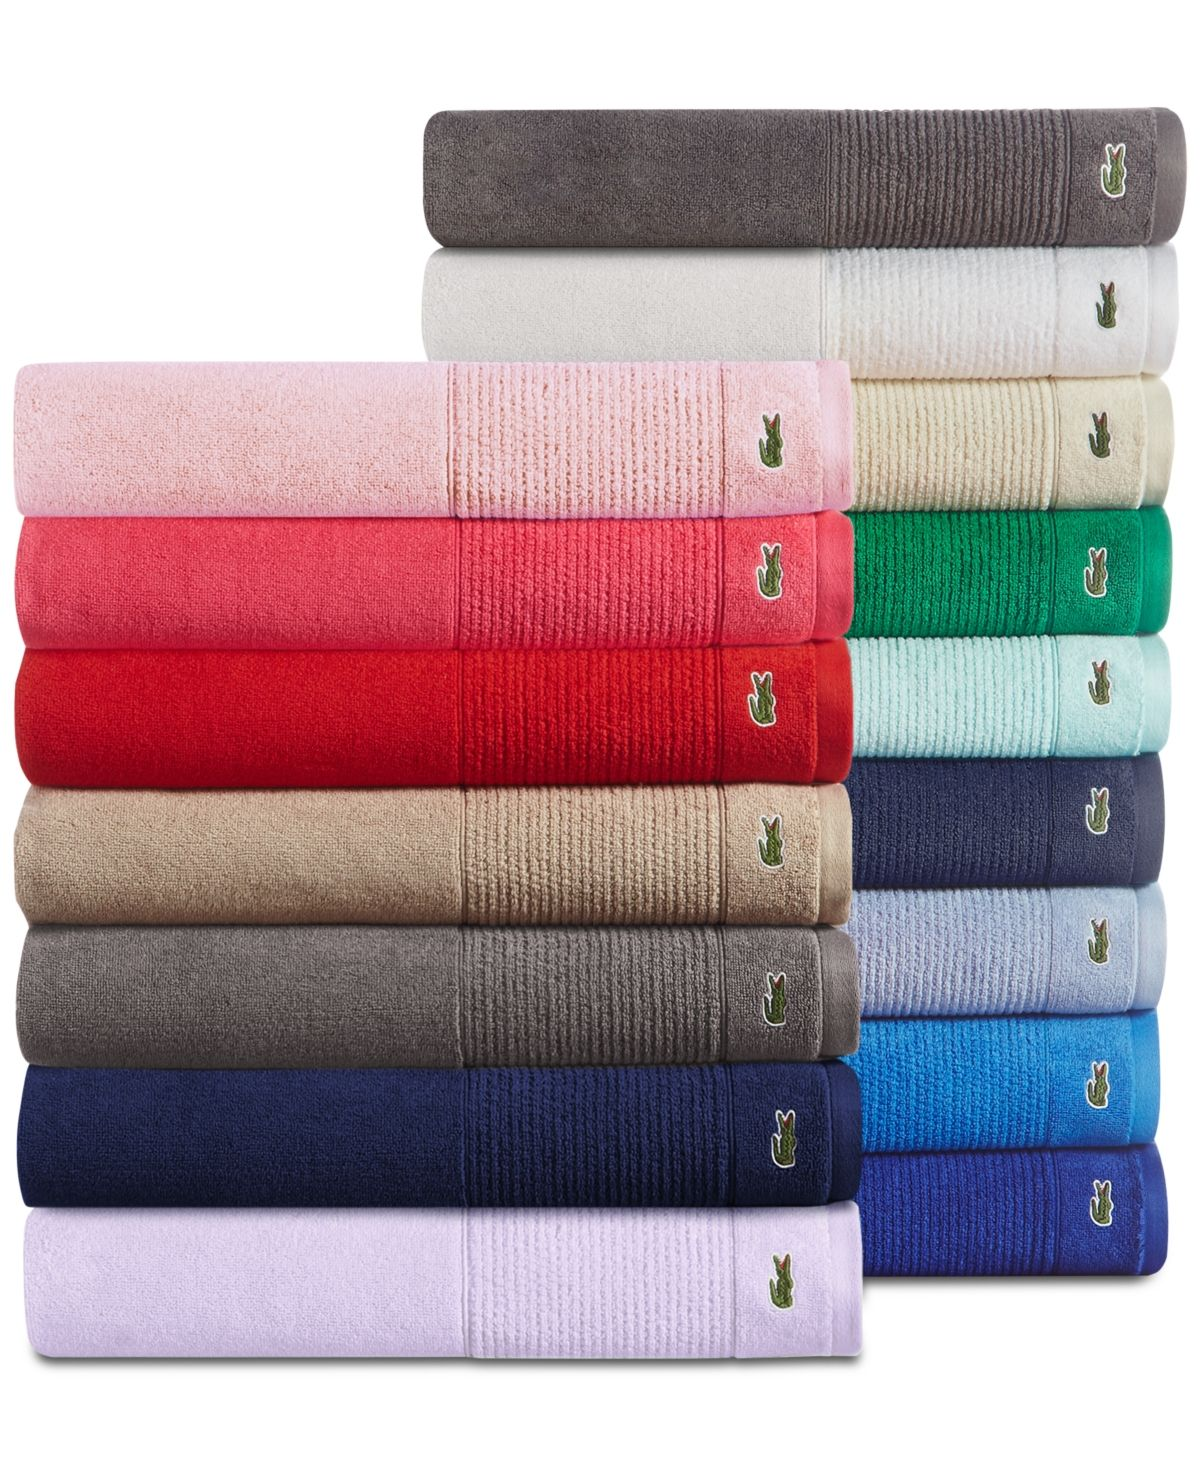 Lacoste Home Lacoste Mix And Match Cotton Fashion Towels Reviews Bath Towels Bed Bath Macy S Tub Mat Green Towels Baby Clothes Shops